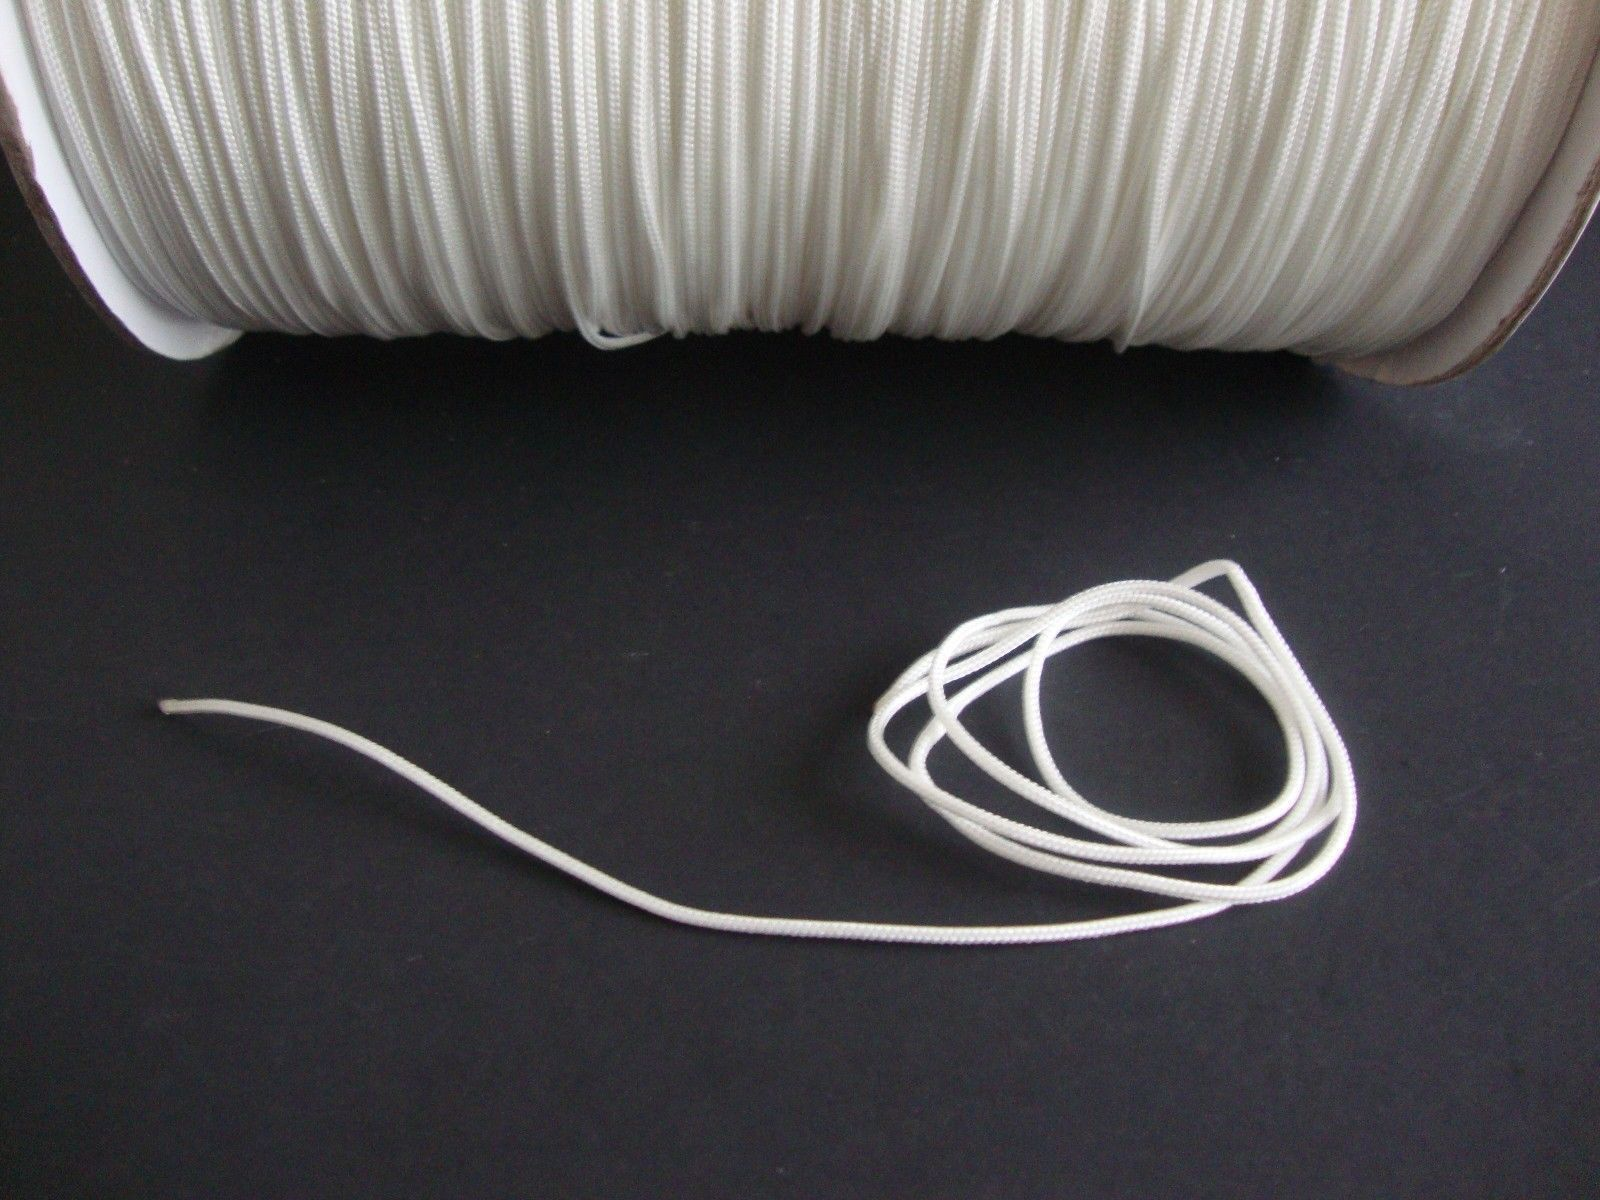 40 FEET:1.8mm WHITE LIFT CORD for Blinds, Roman Shades and More